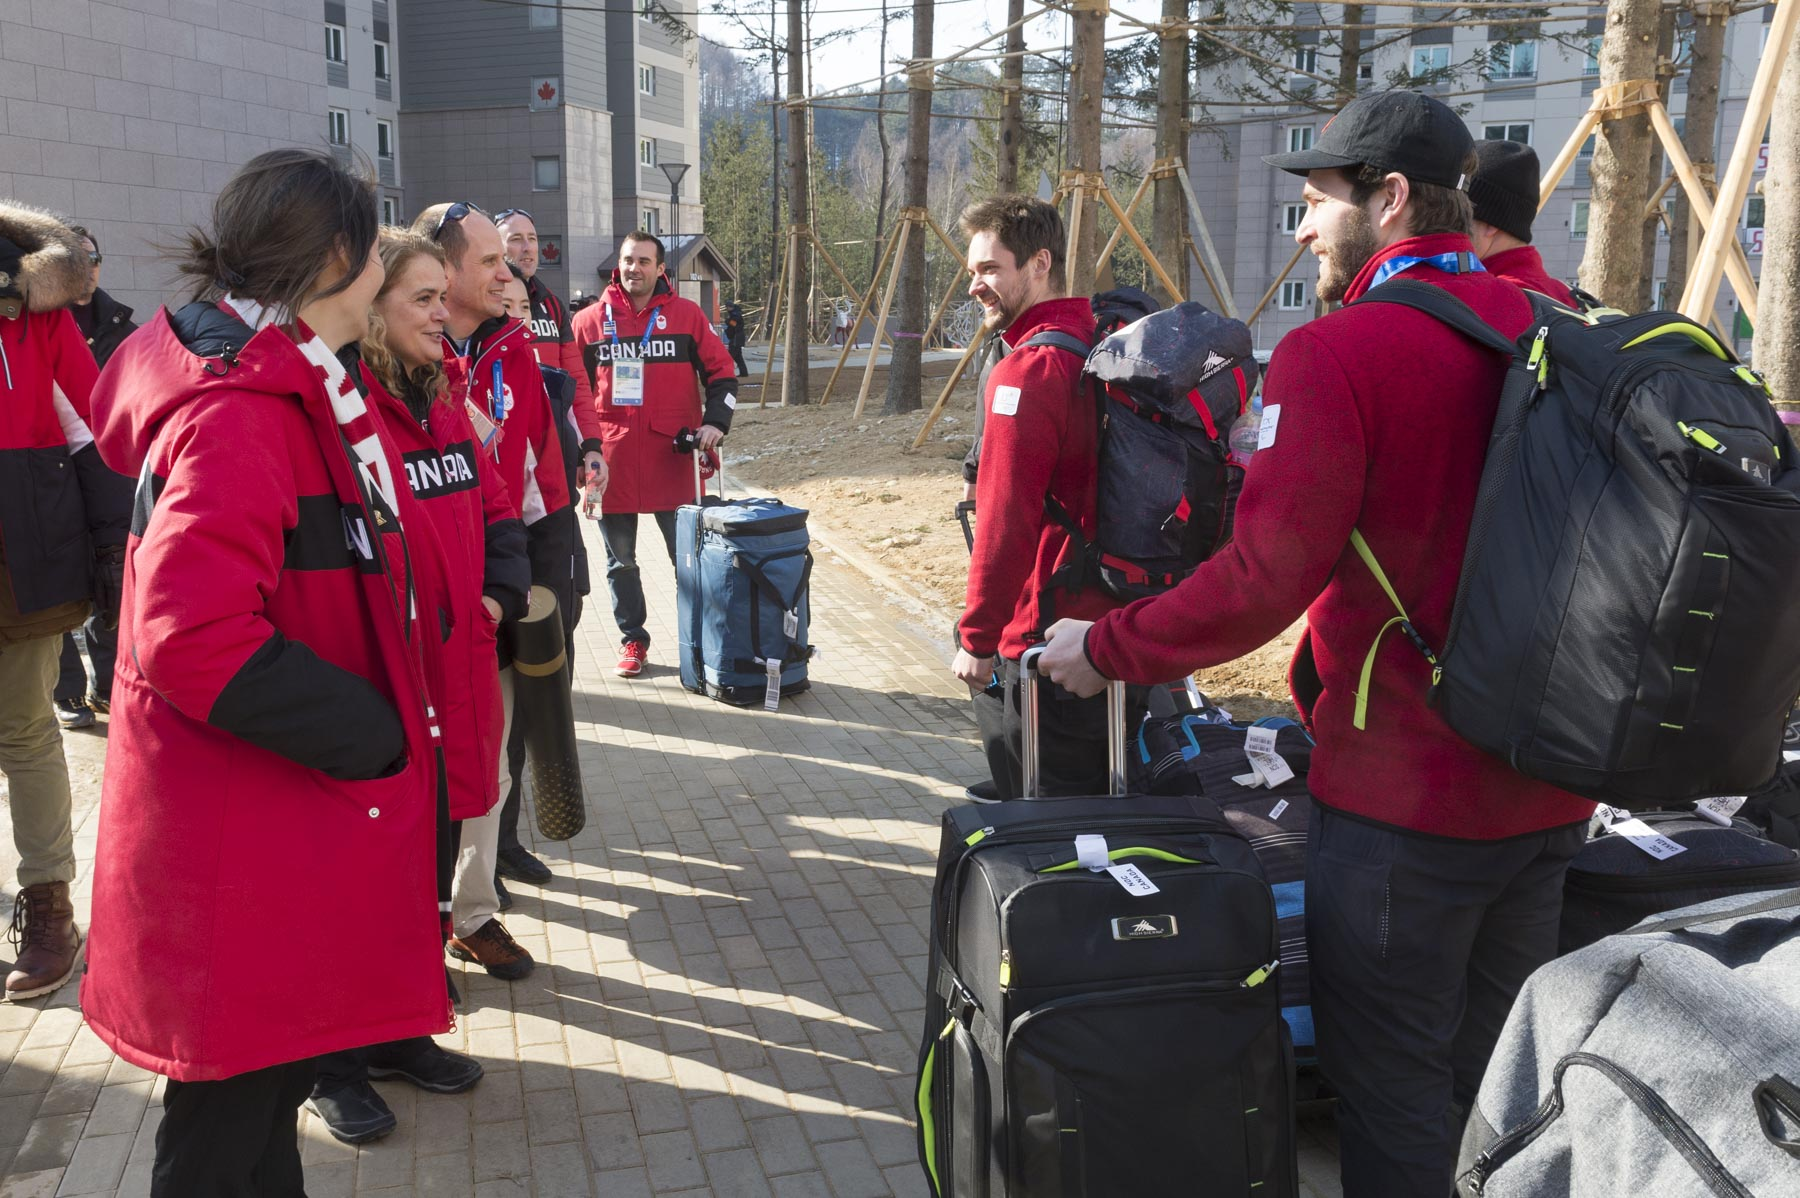 As Her Excellency was leaving, she met with snowboarders who were arriving in their new home during the Games.